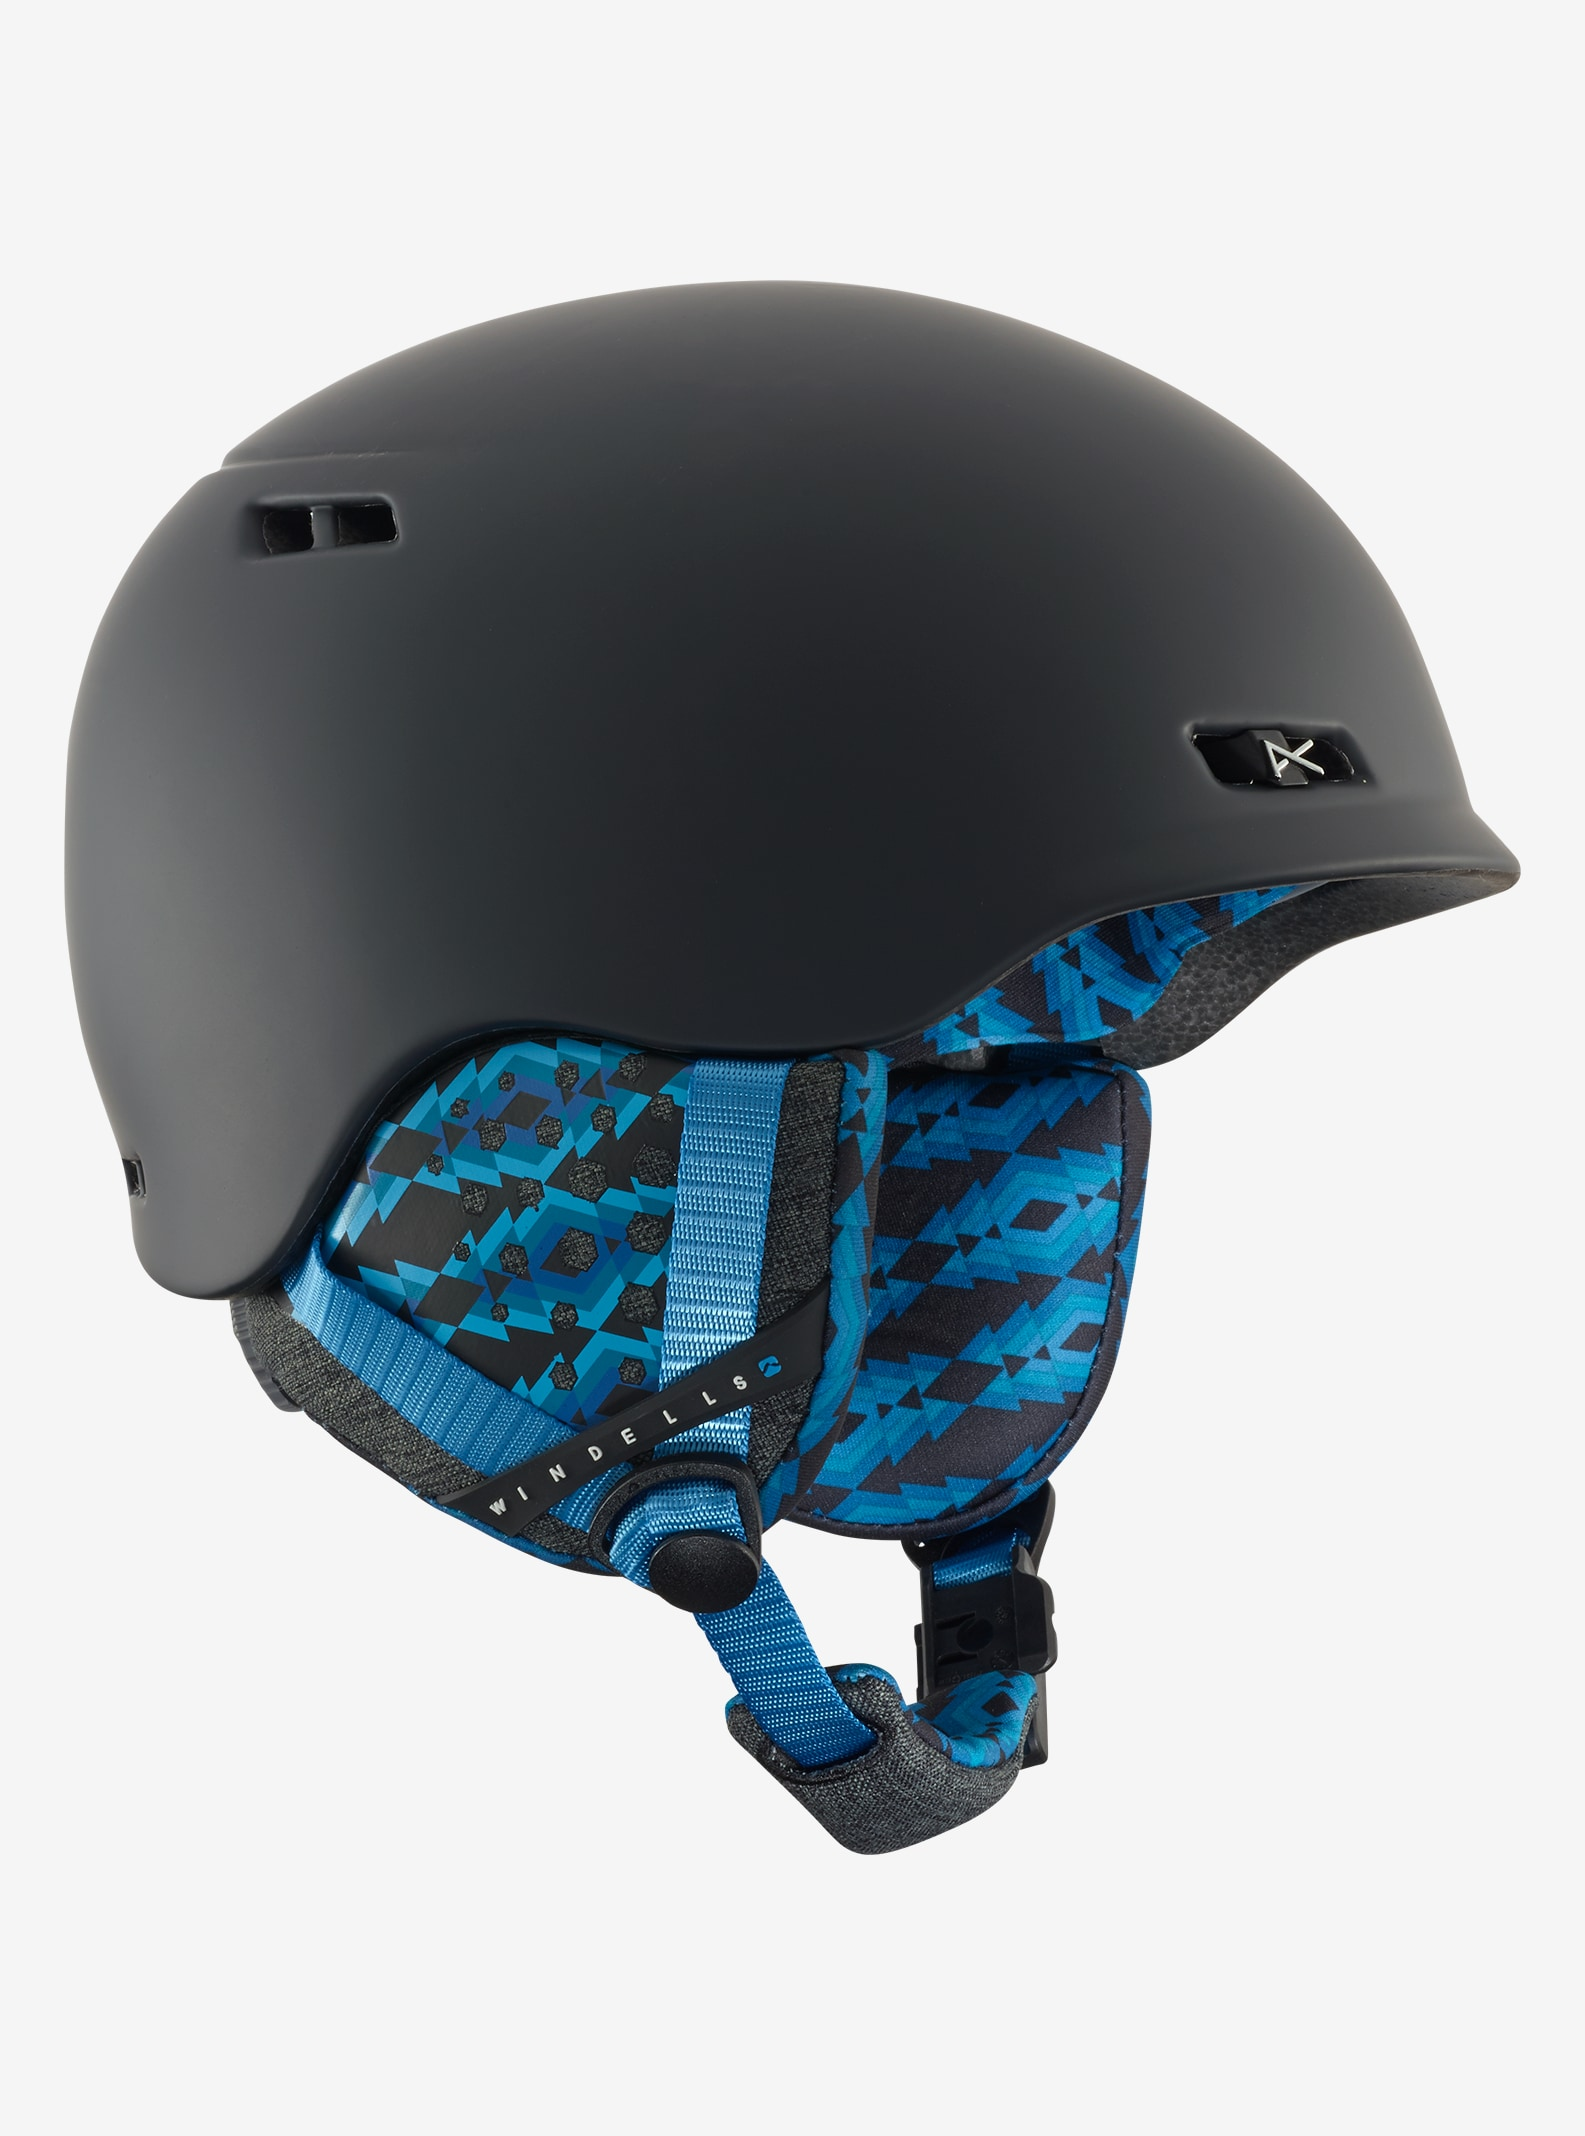 Men's Windells x Anon Rodan Helmet shown in Windells - Coalition